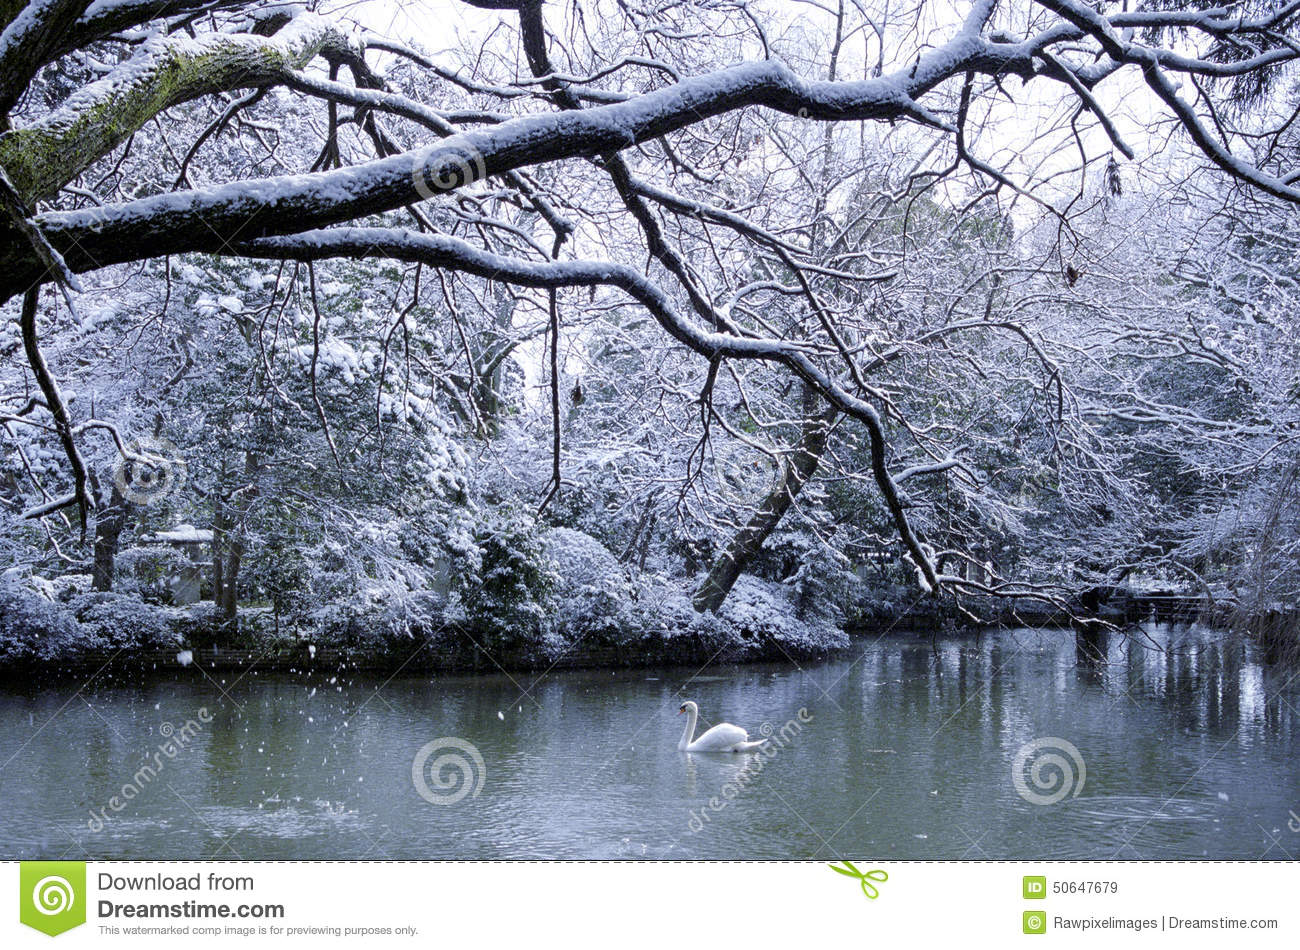 Swan Lake Season Snowing Landscape Concept